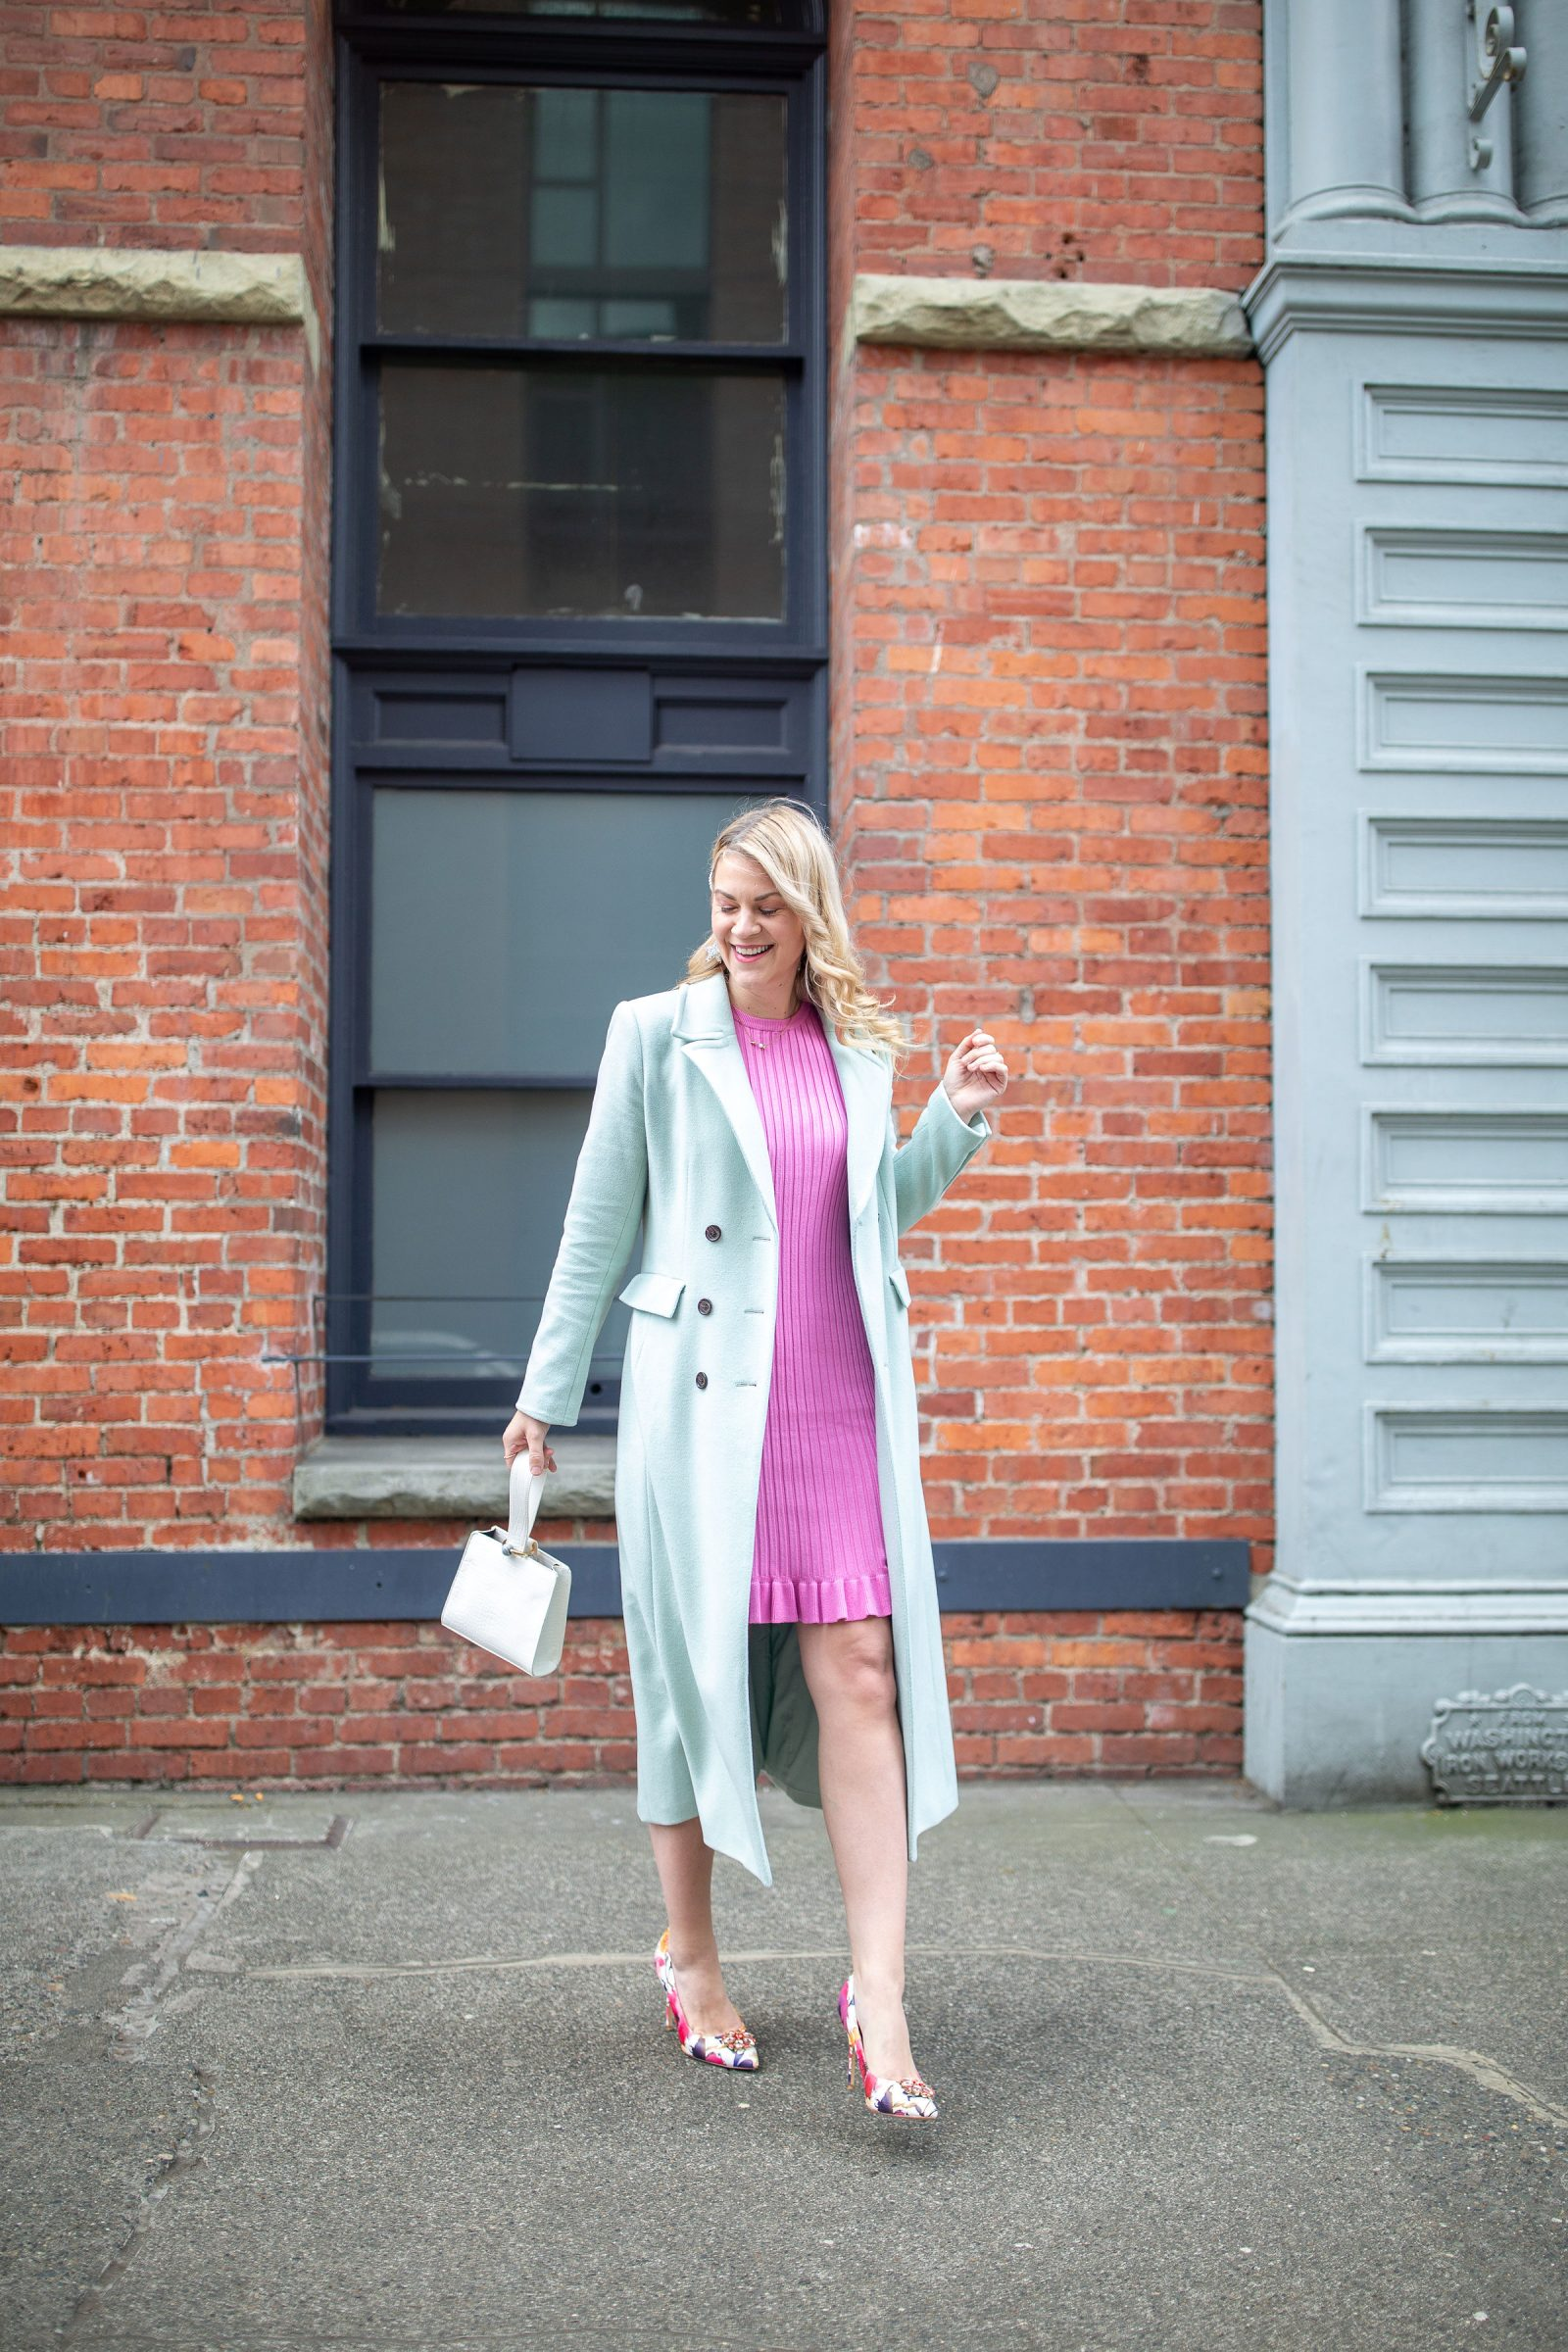 Spring Pastels: How to Wear Pink & Mint, styling tips featured by top Seattle tall fashion blogger, Whit Wanders